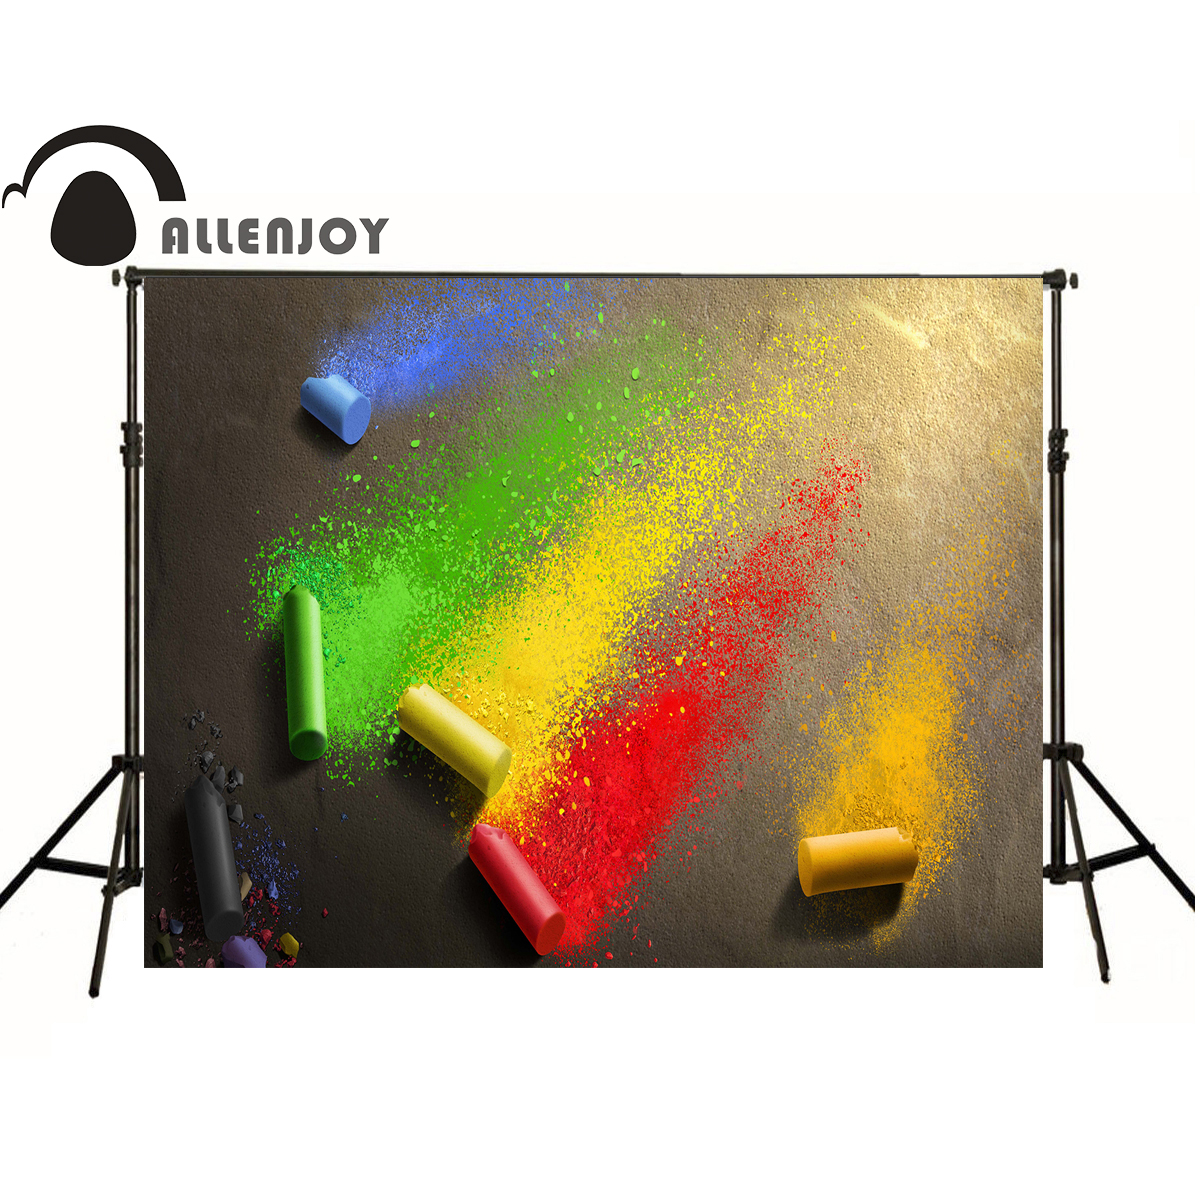 Color booth online - Allenjoy Photography Backdrops Color Red Graffiti Art Photo Baby Background Photo Booth China Mainland